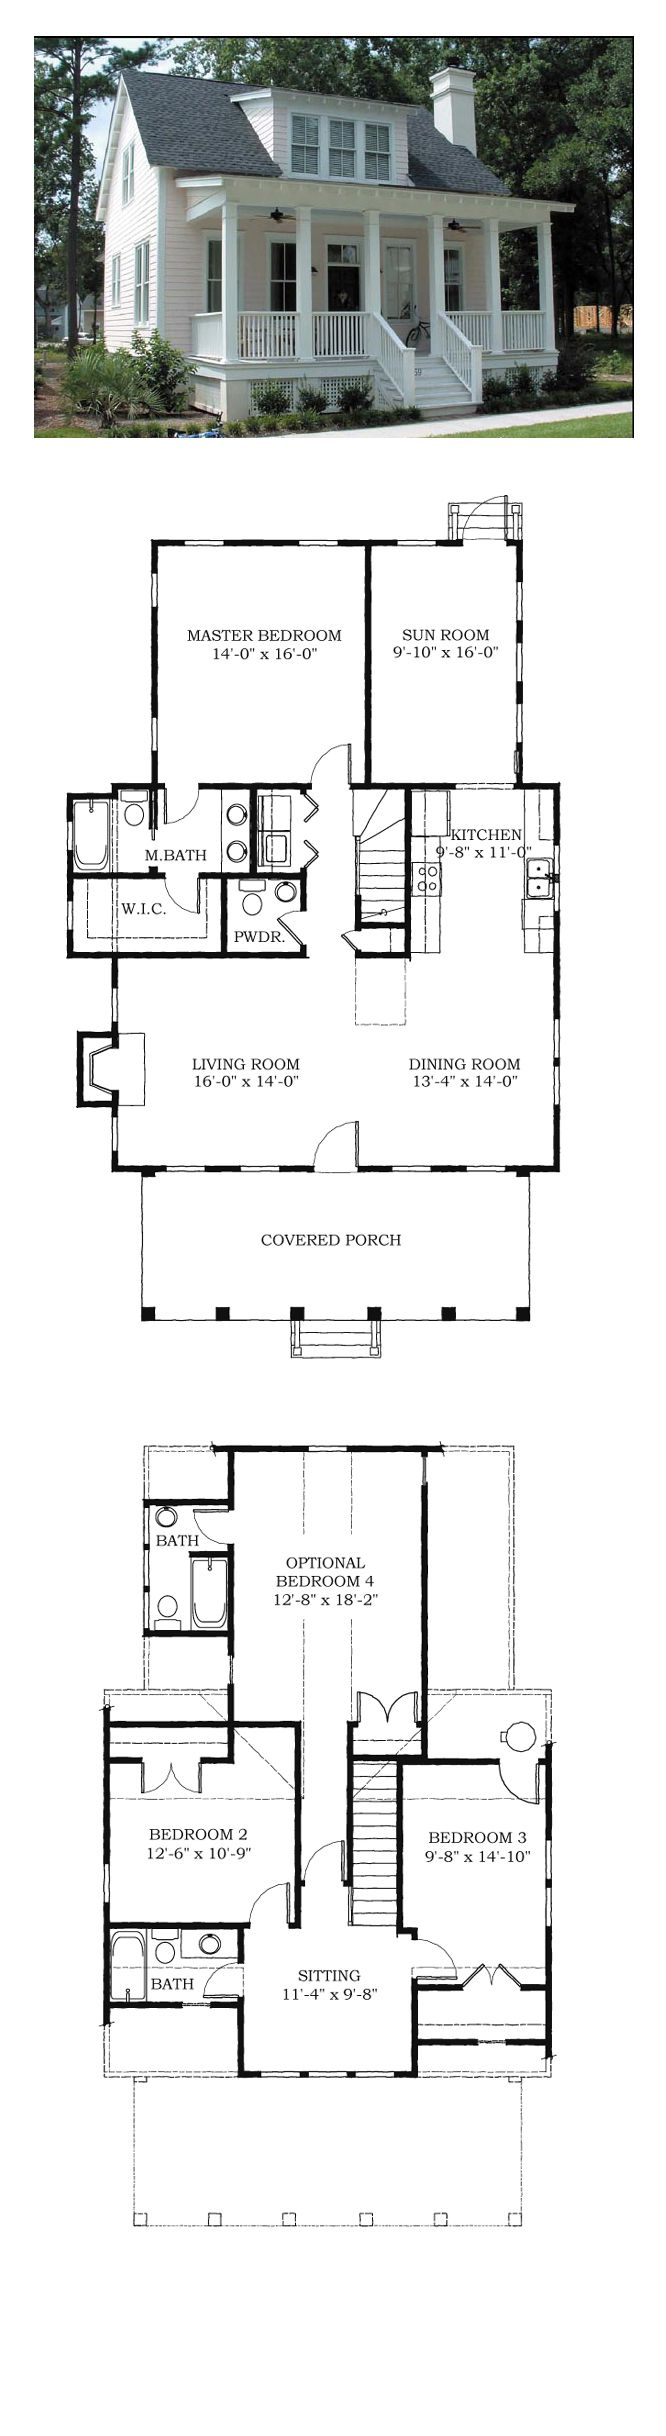 cool house plan id chp 38703 total living area 1783 sq - Small Cottage House Plans 2